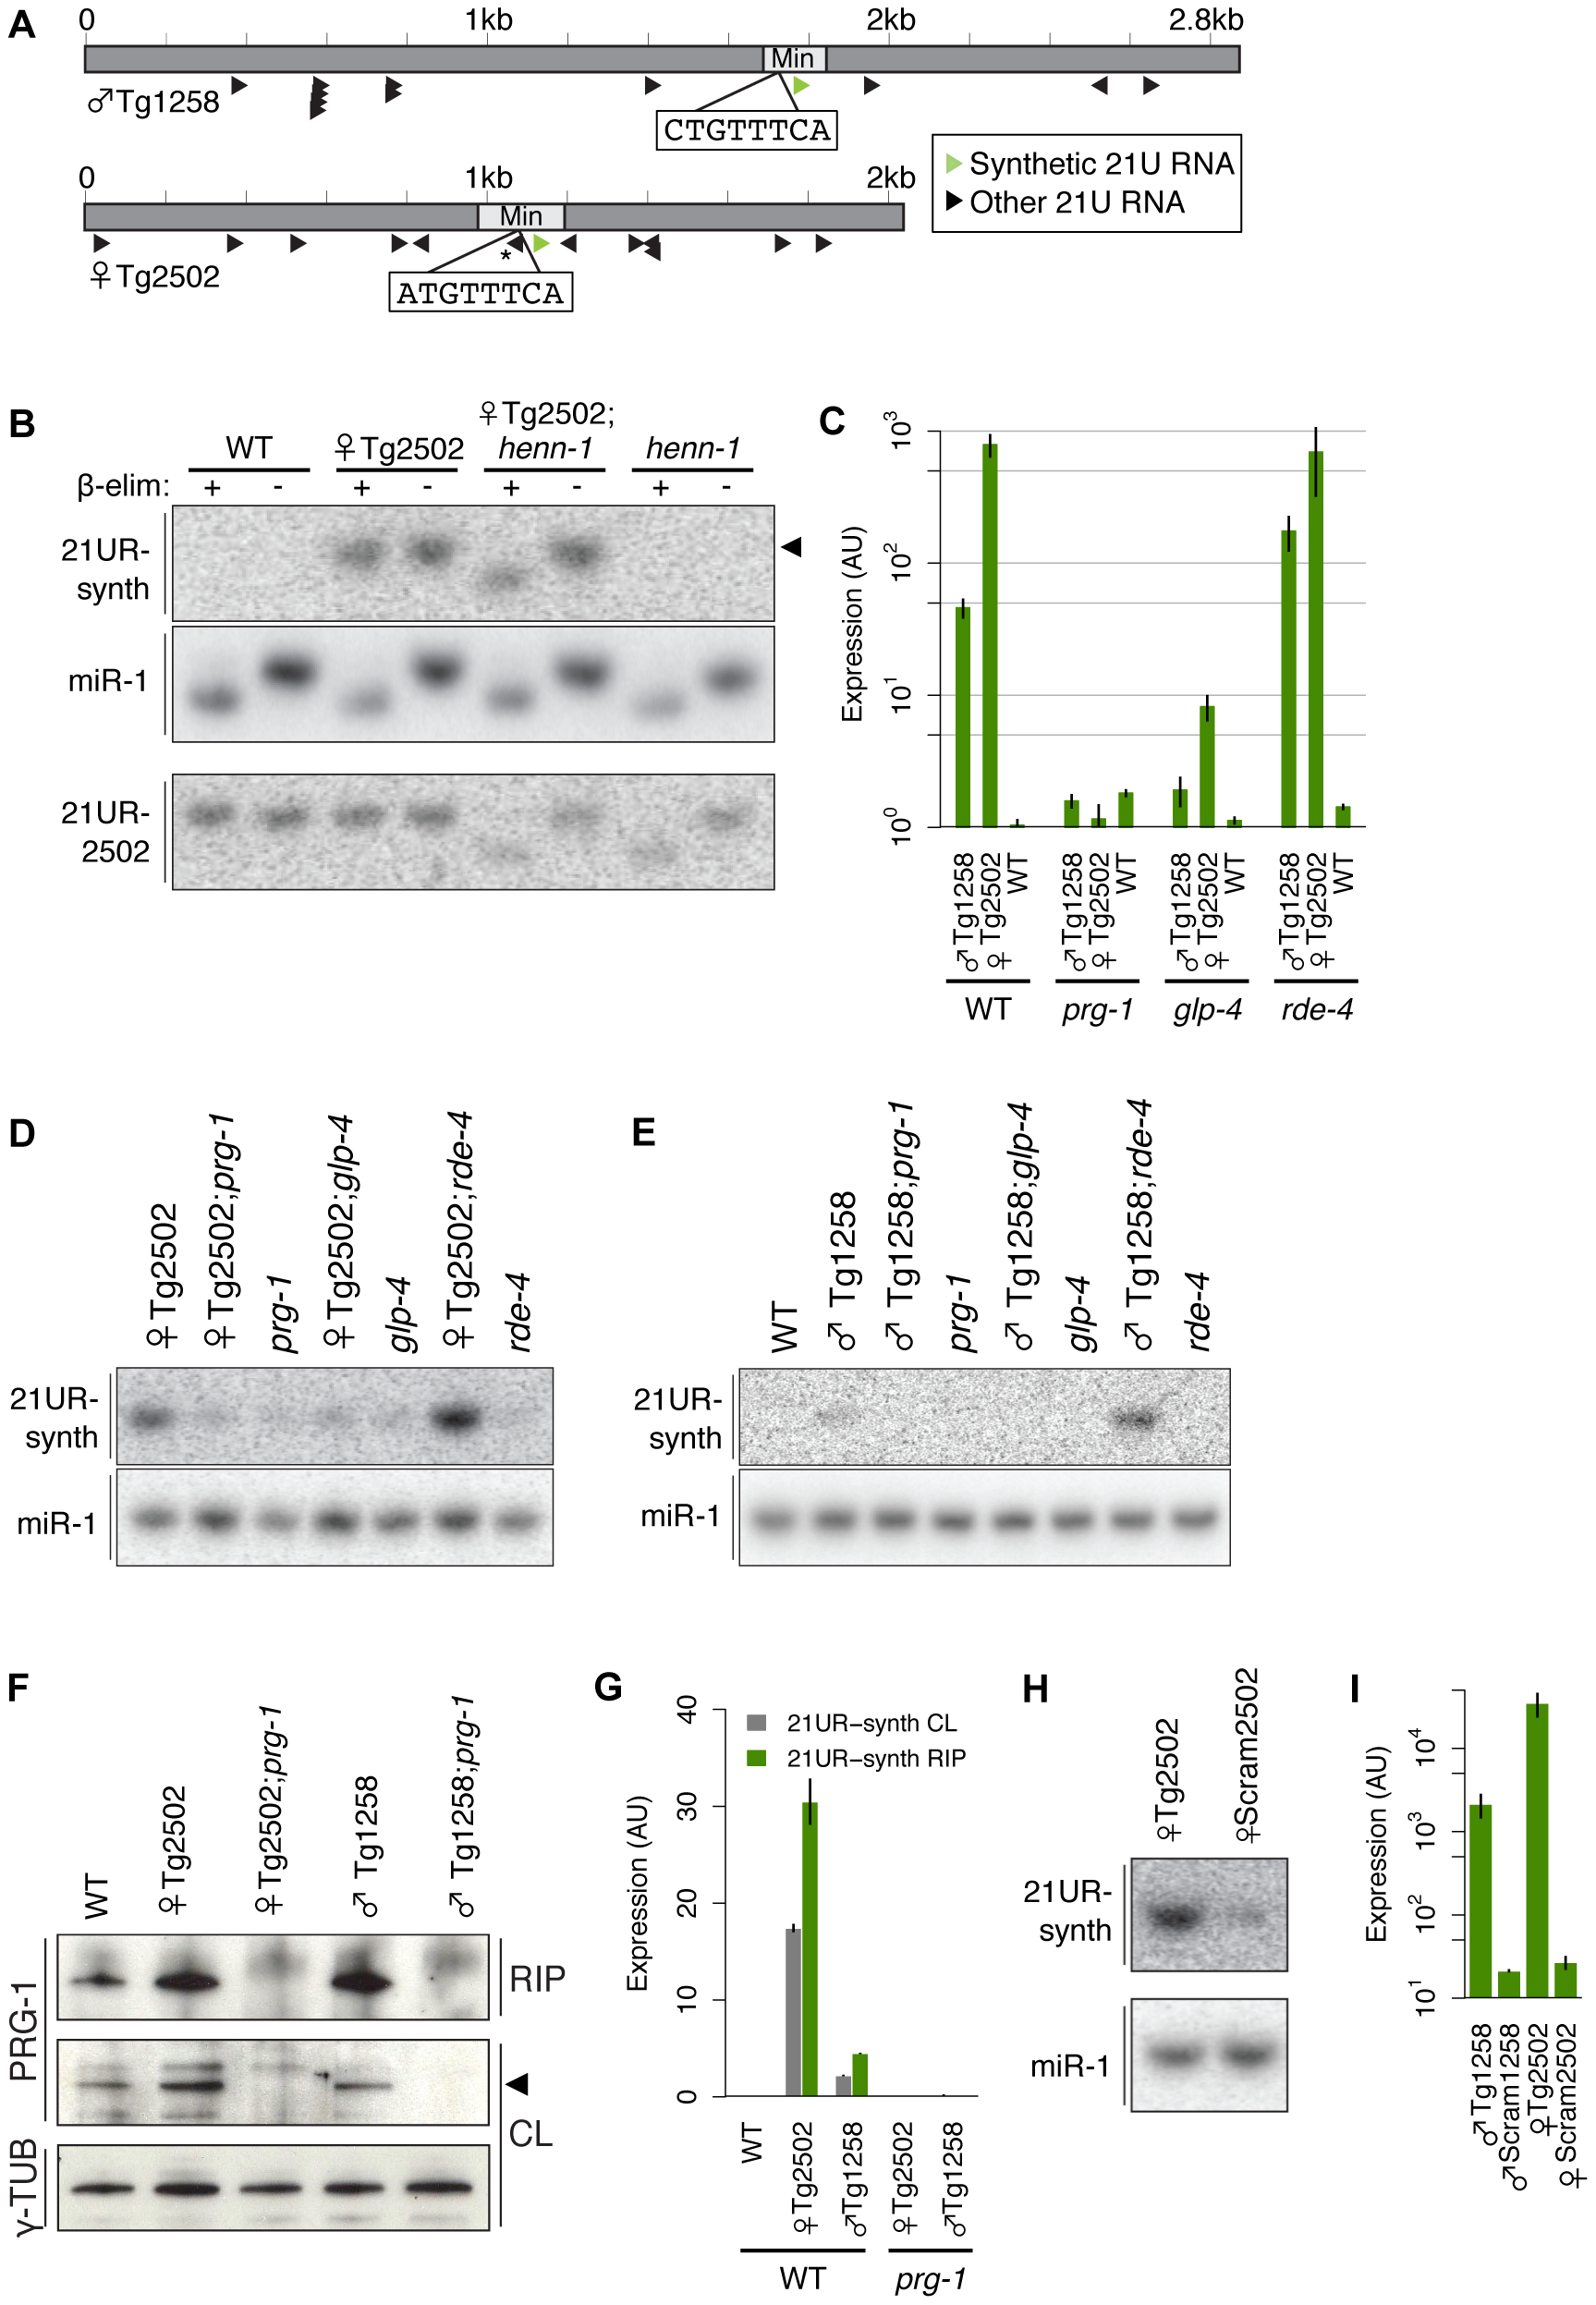 A transgenic synthetic 21U RNA shows characteristics of endogenous 21U RNAs.